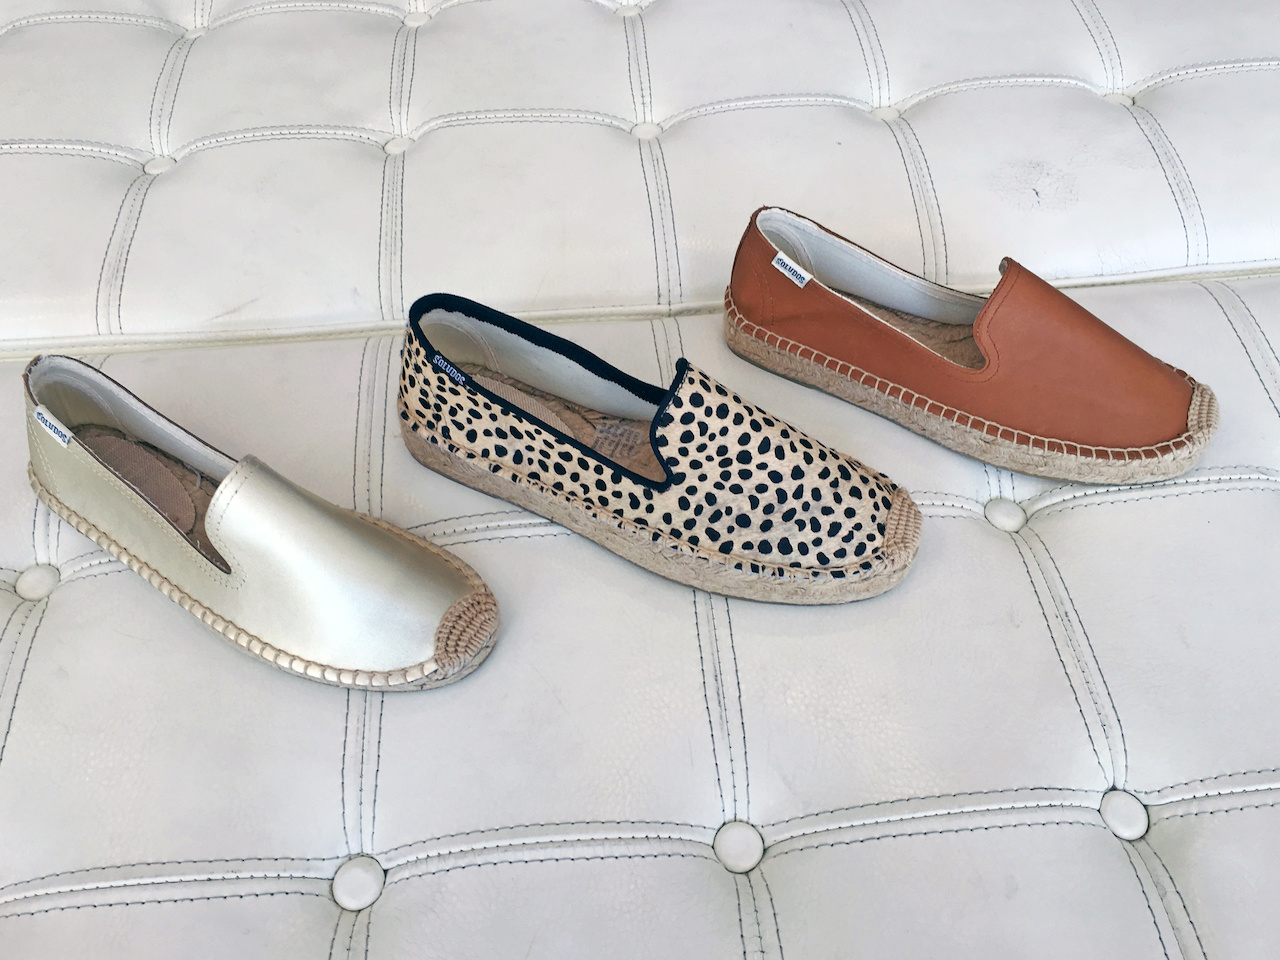 Soludos in tan and silver leather, $98, and leopard-print doe hair, $108, at Stella Blu